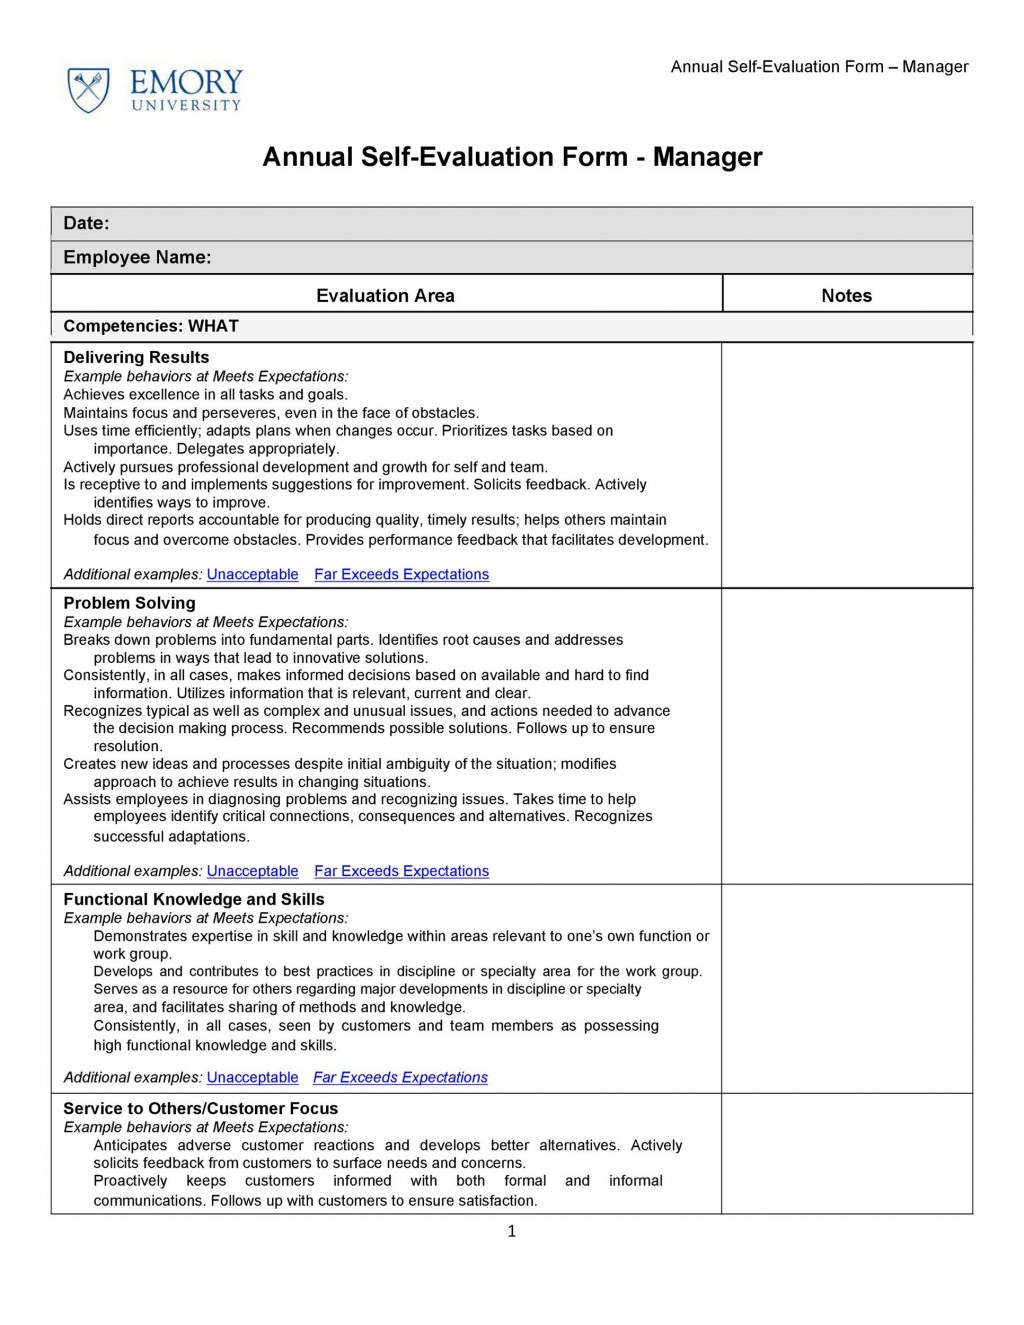 008 Unusual Employee Self Evaluation Form Template High Def  Free WordLarge